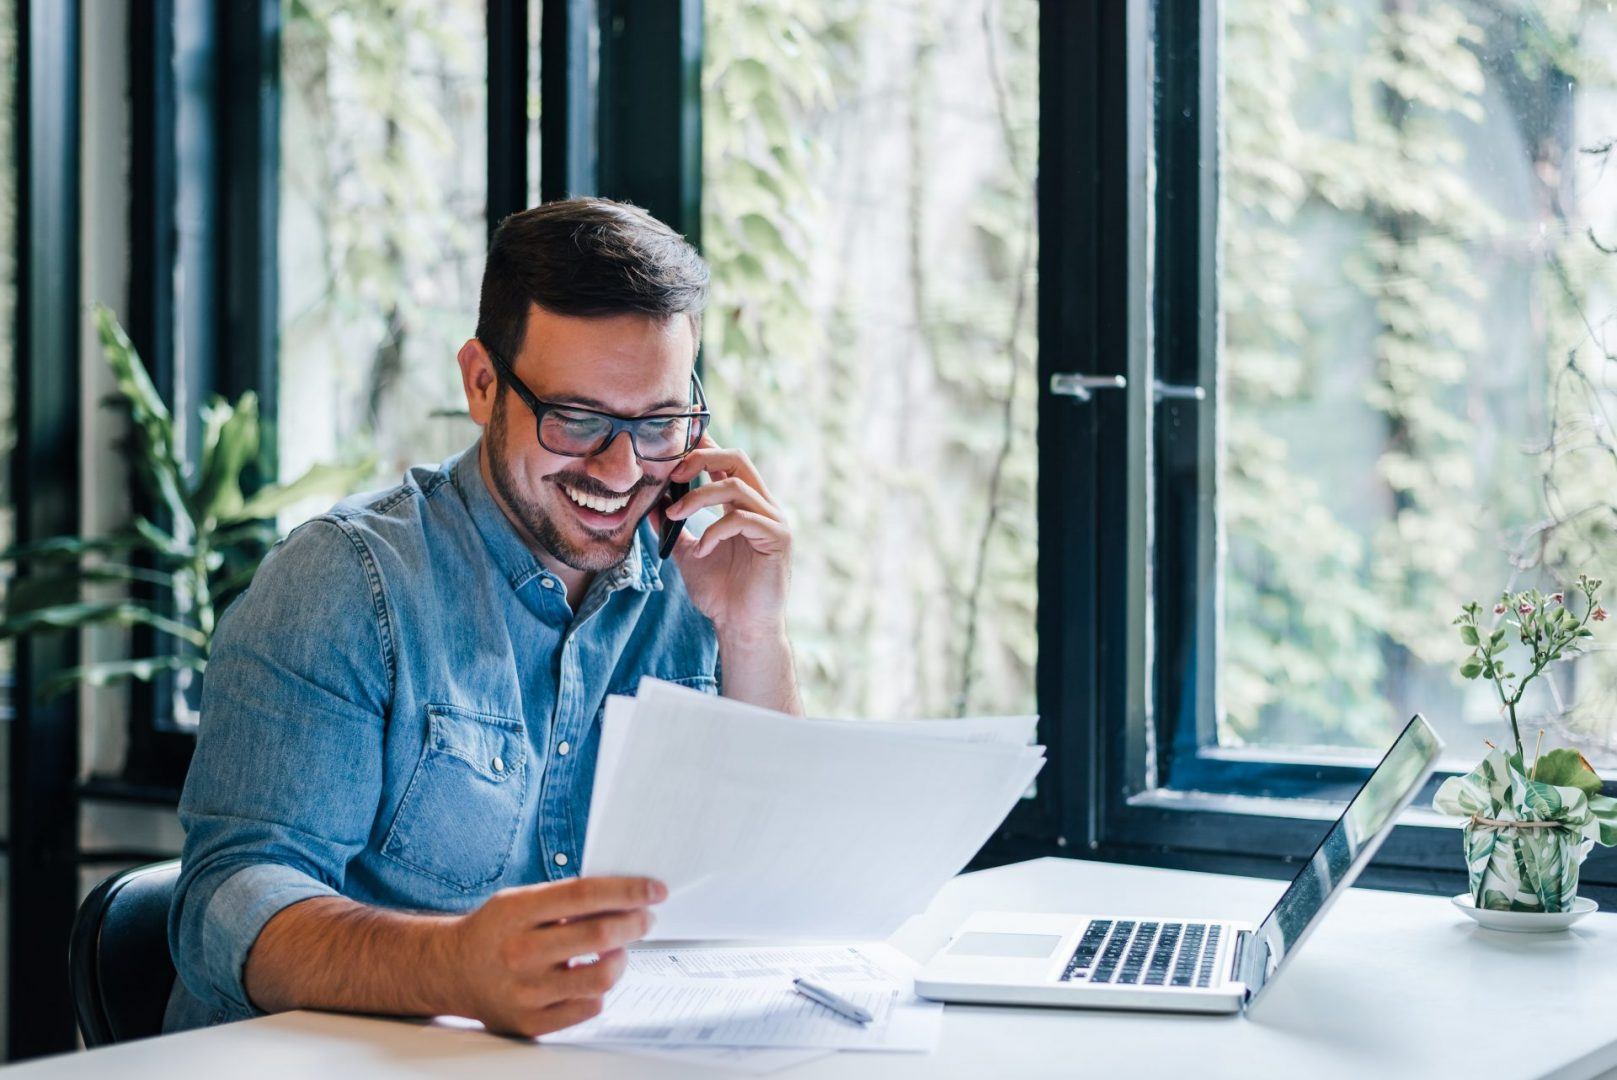 Portrait Of Young Smiling Cheerful Entrepreneur In Casual Office Making Phone Call While Working With Charts And Graphs Looking At Paper Documents